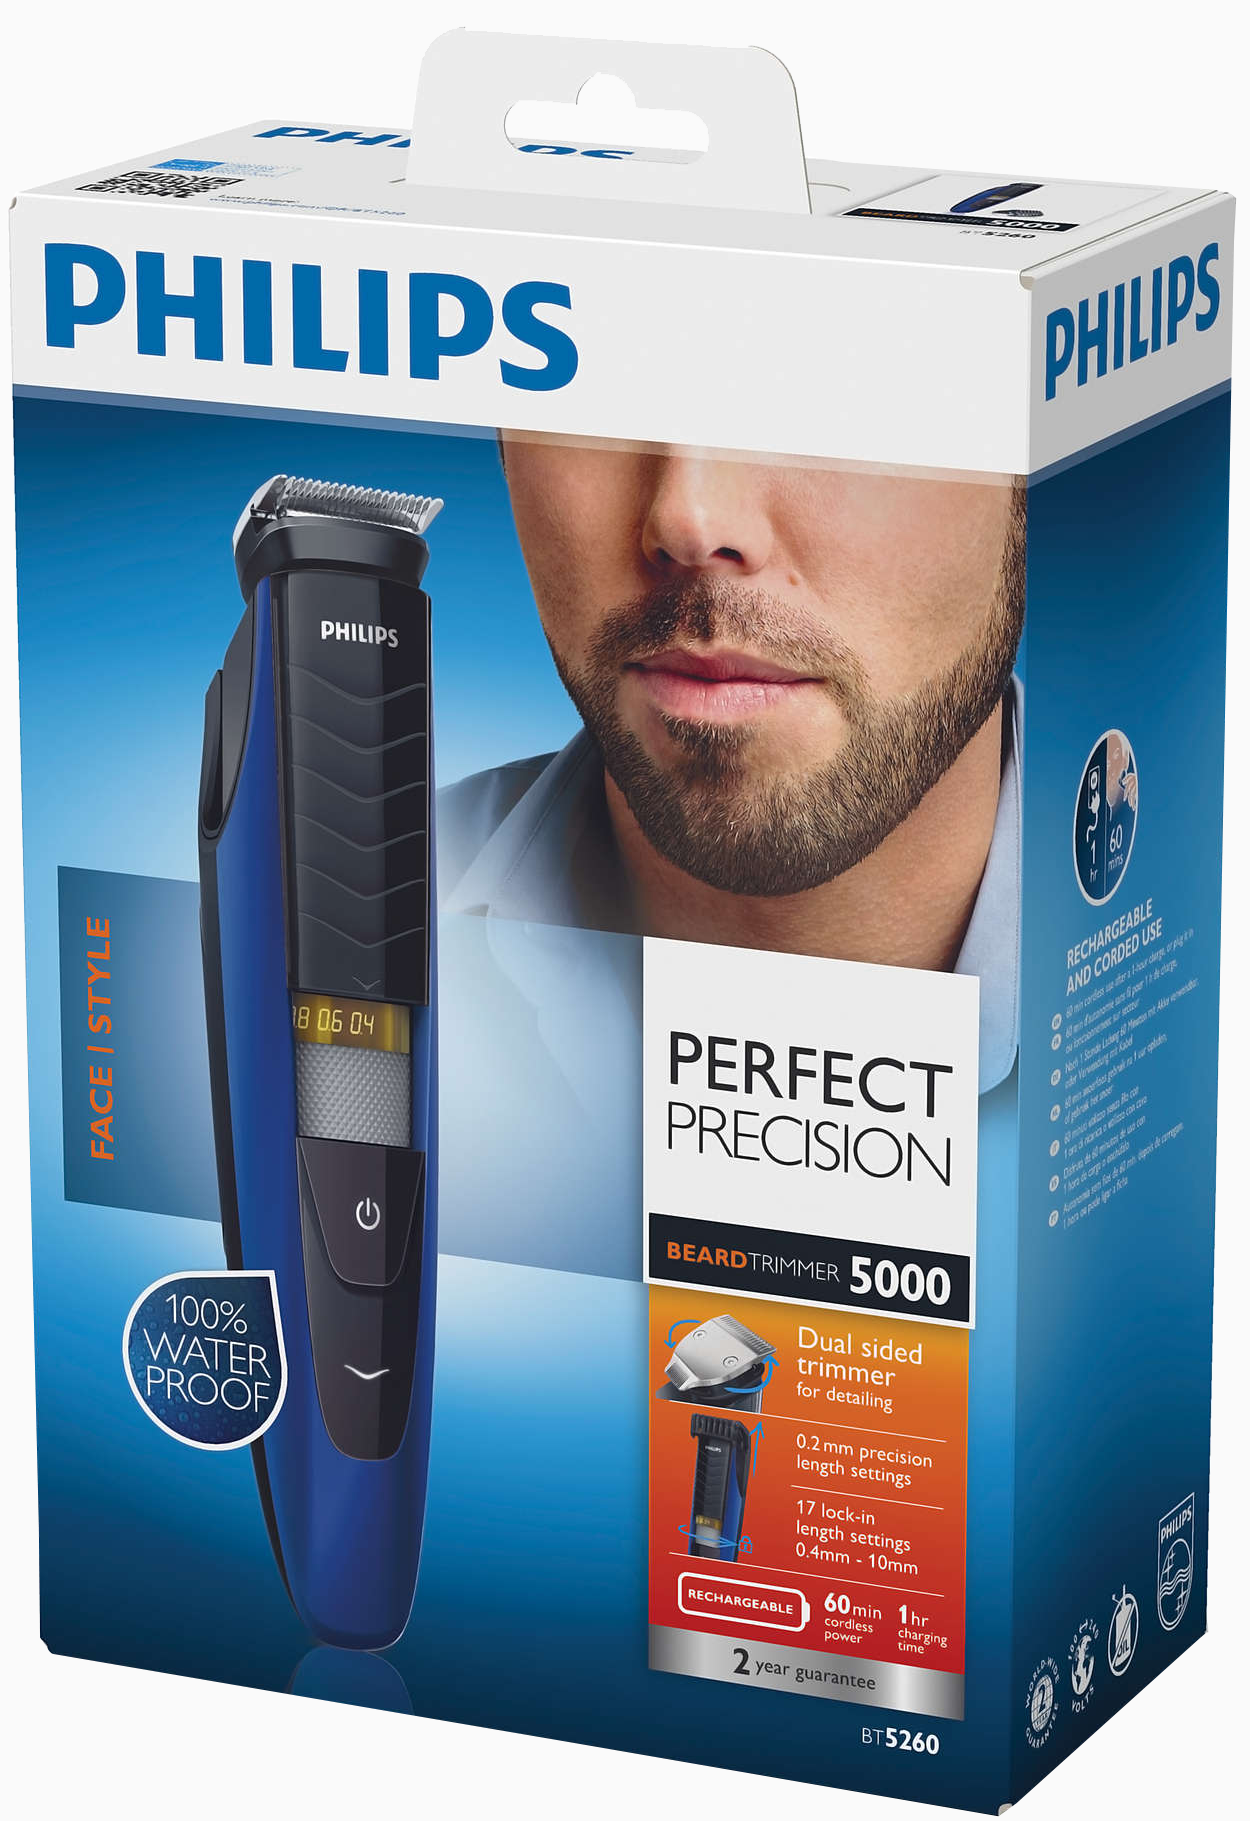 review philips bt5262 precision beard trimmer hughes blog. Black Bedroom Furniture Sets. Home Design Ideas